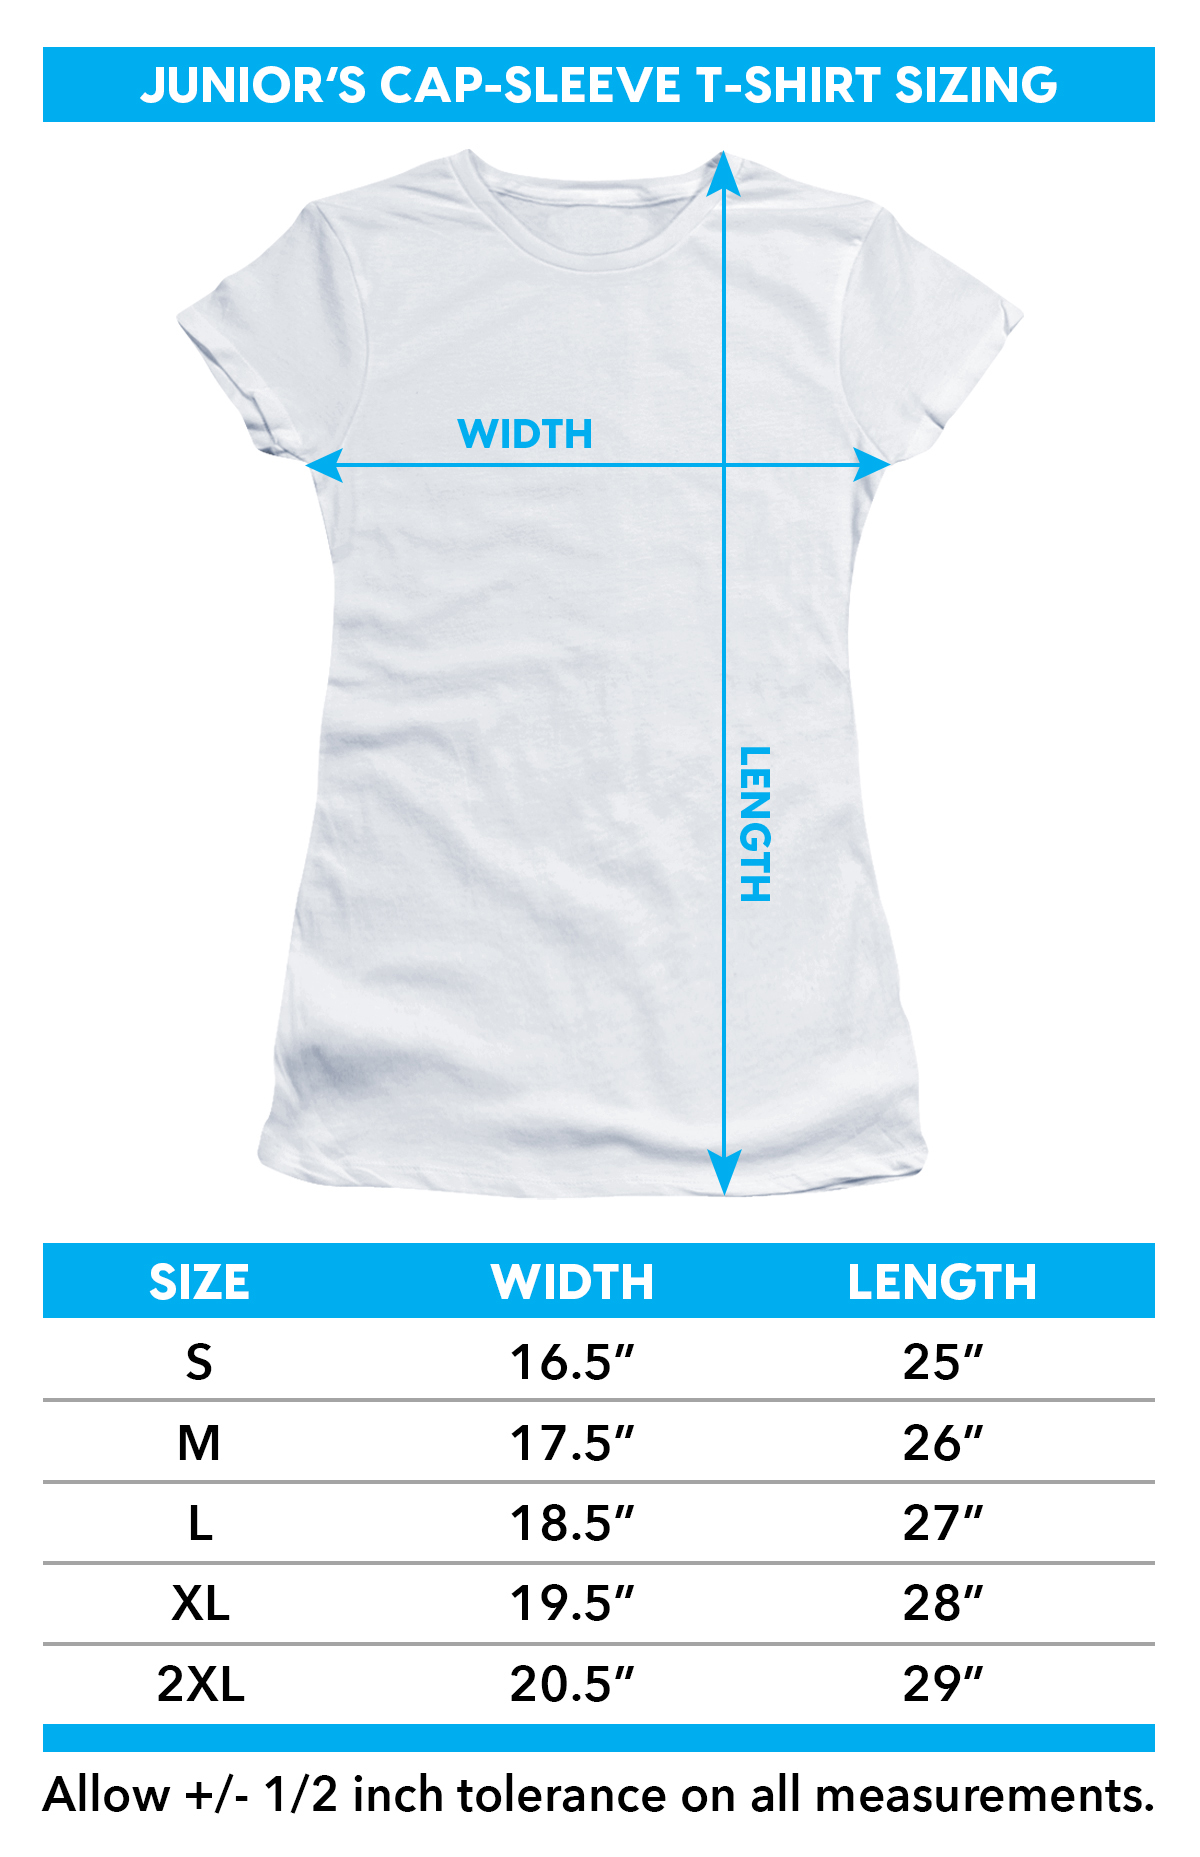 Girls sizing chart for Starship Troopers Girls T-Shirt - ISLA Nublar 93 TRV-SONYM116-JS